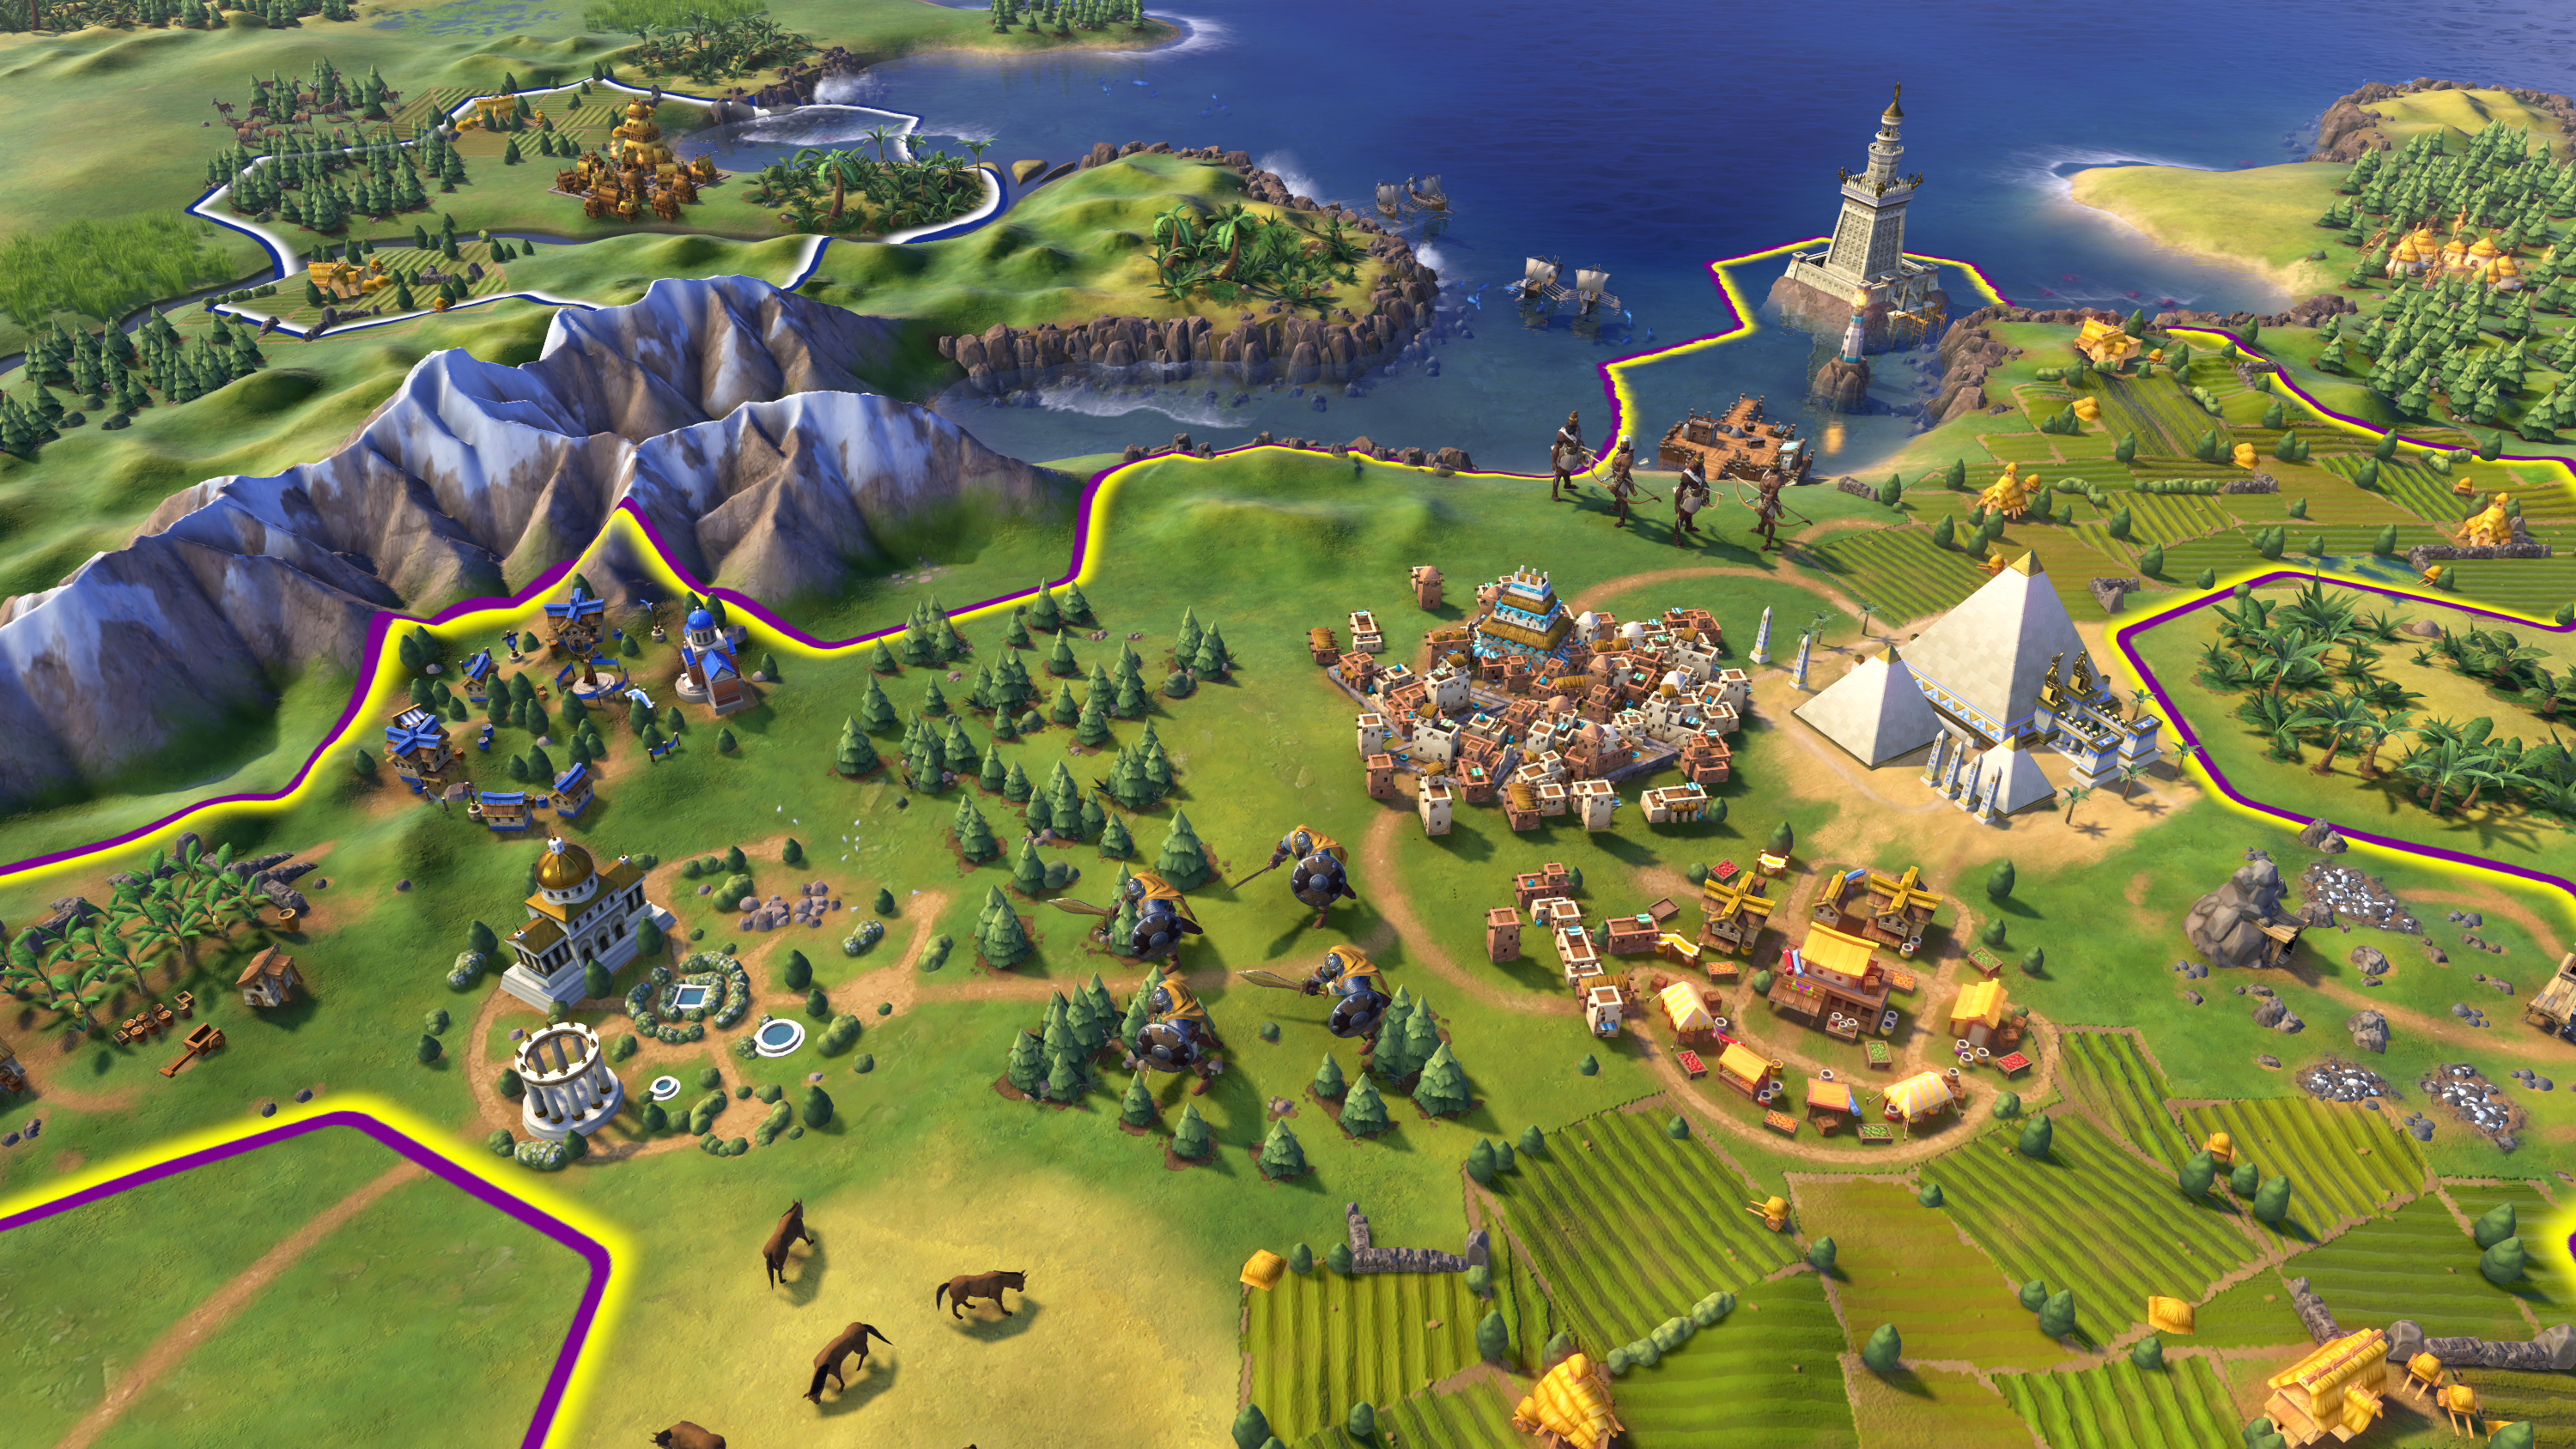 Sid Meier's Civilization VI: Digital Deluxe [v.1.0.0.26 + 2 DLC] (2016) PC | RePack от Juk.v.Muravenike - Скриншот 1